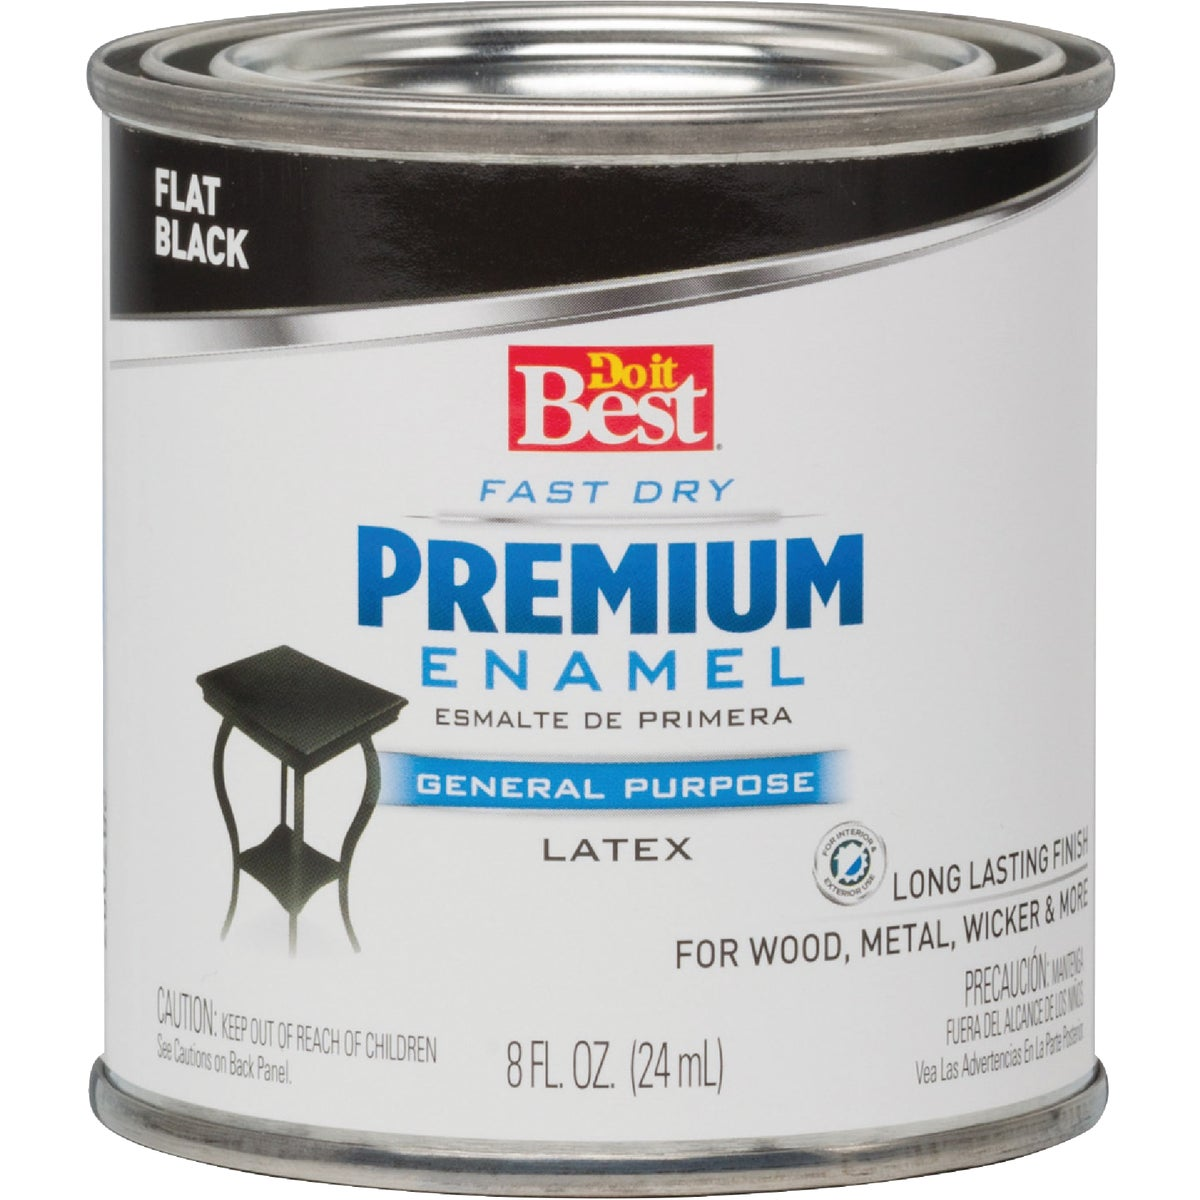 FLAT BLACK LATEX ENAMEL - 203226D by Rustoleum